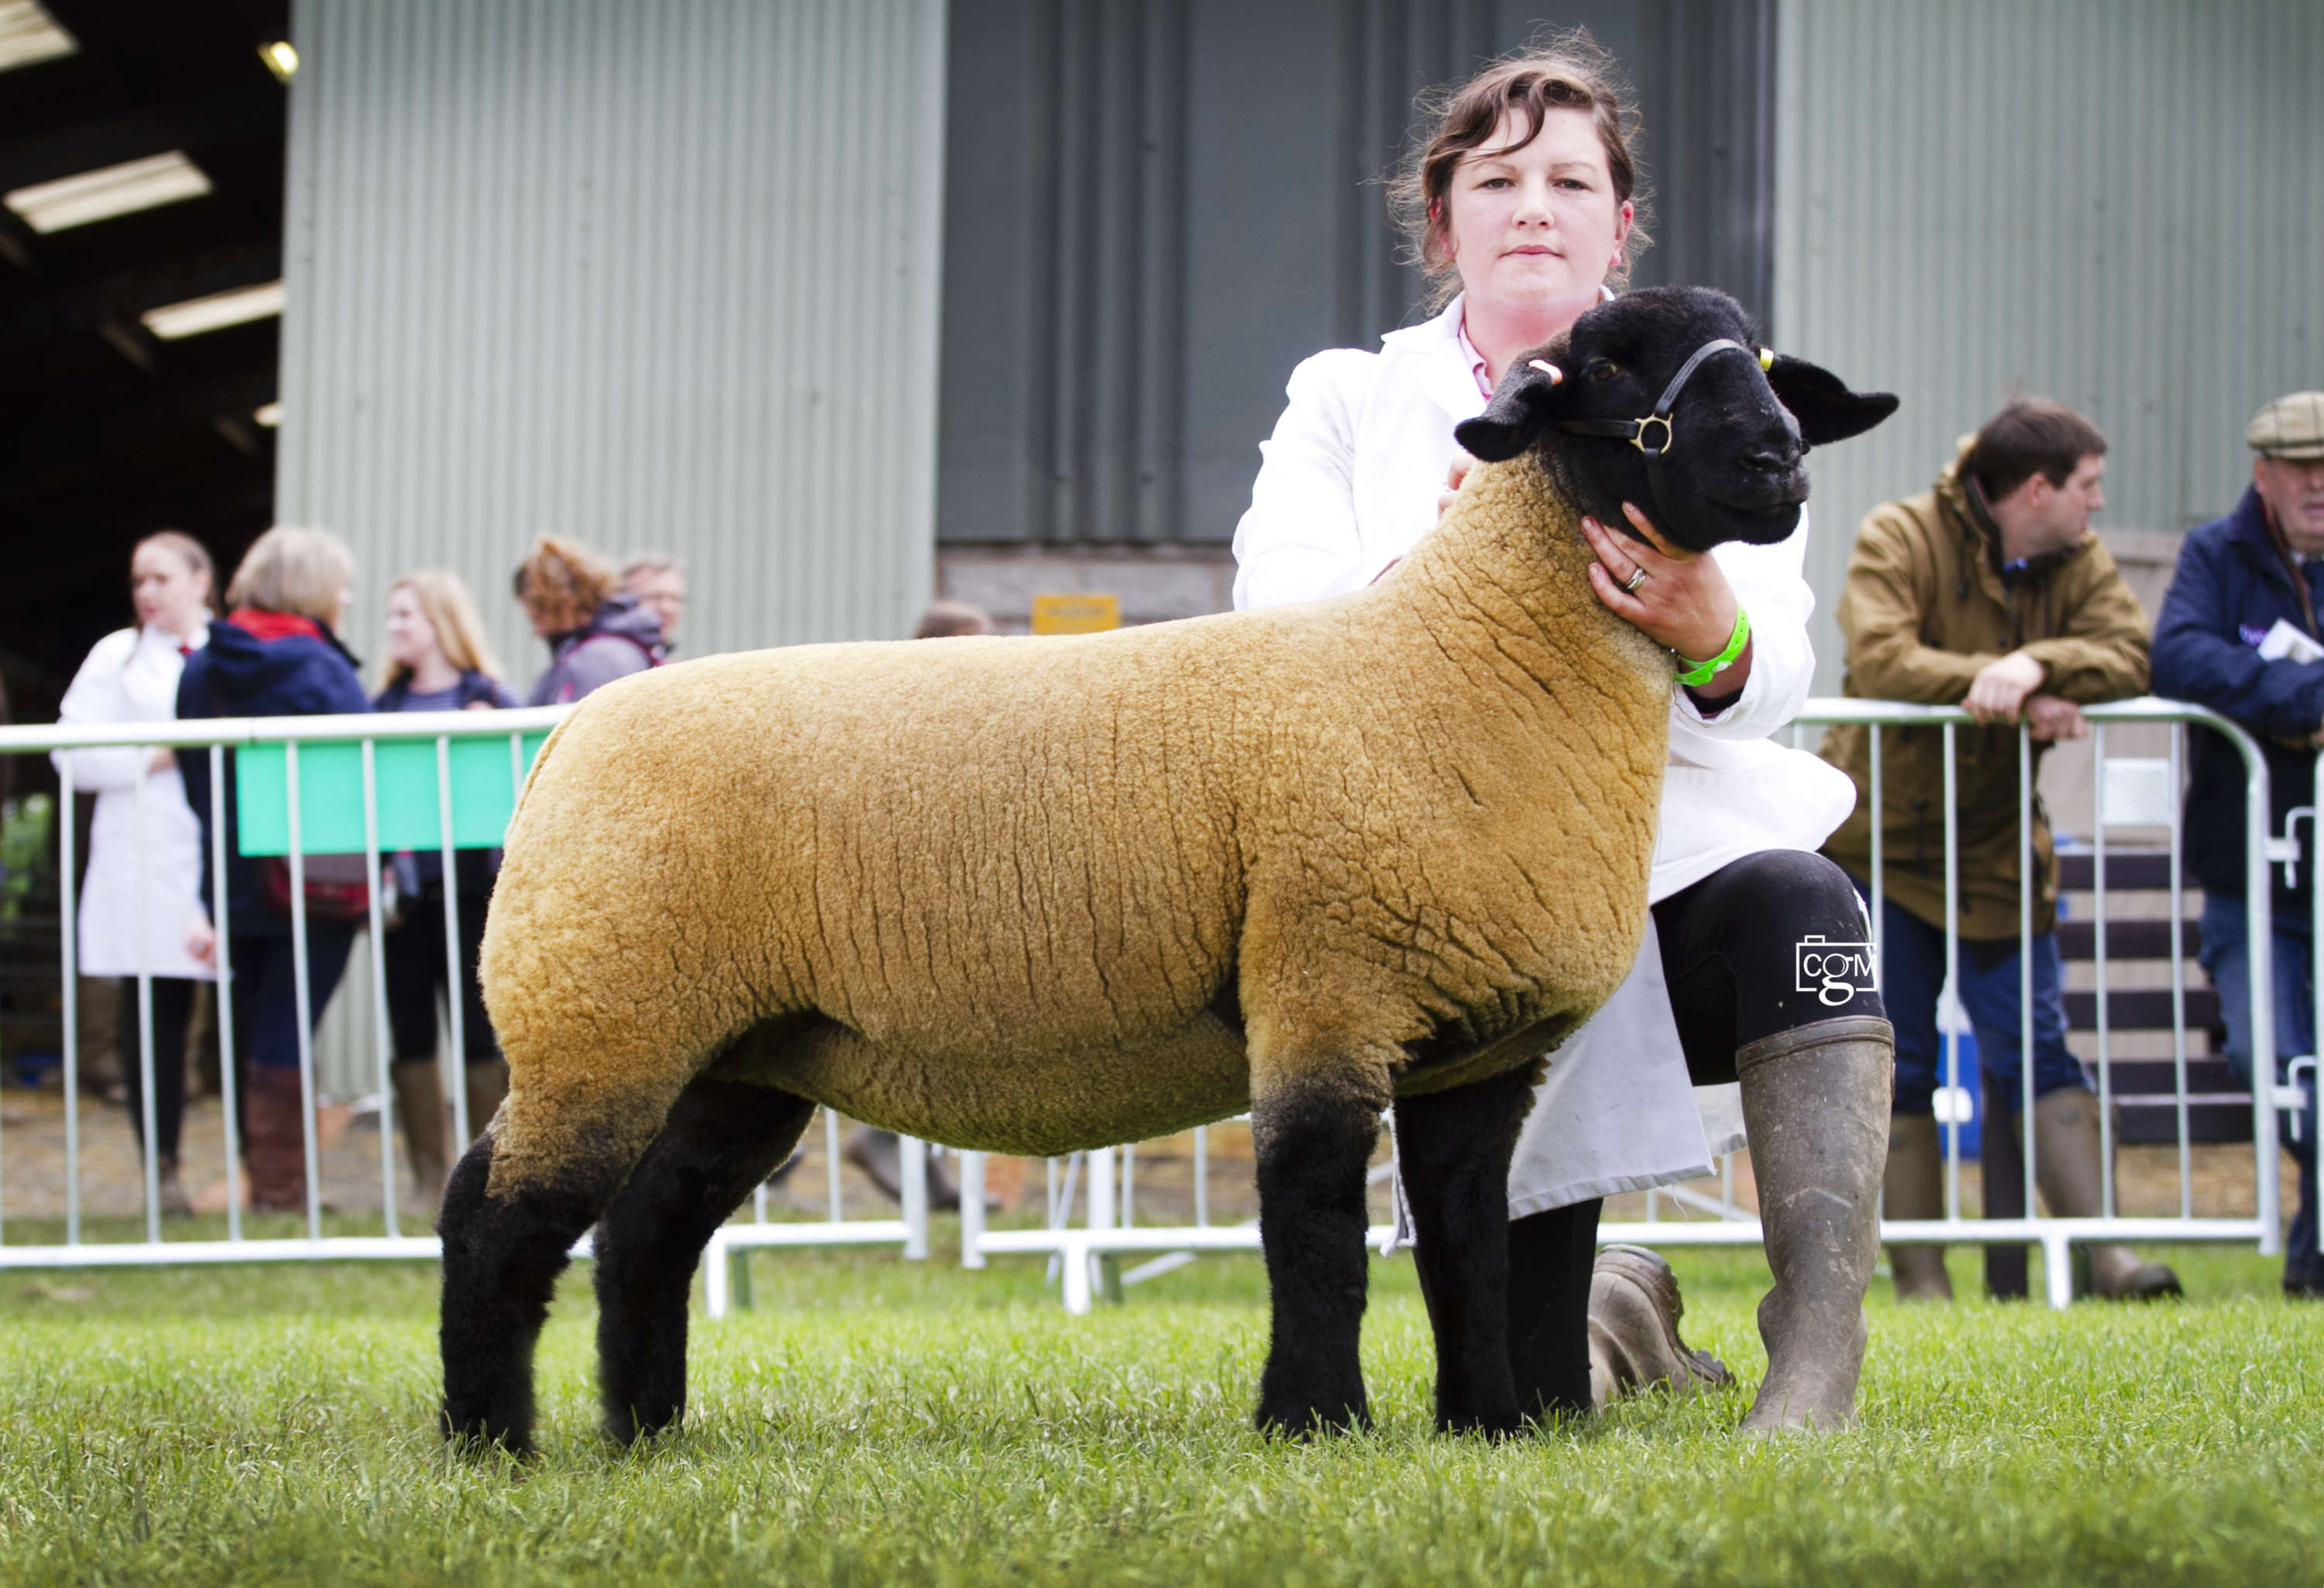 Royal Three Counties Show - Sheep Interbreed Champion - Suffolk Yearling Ewe from Tom and Aimee Mogford in Devon (C)Chrissie Long.jpg